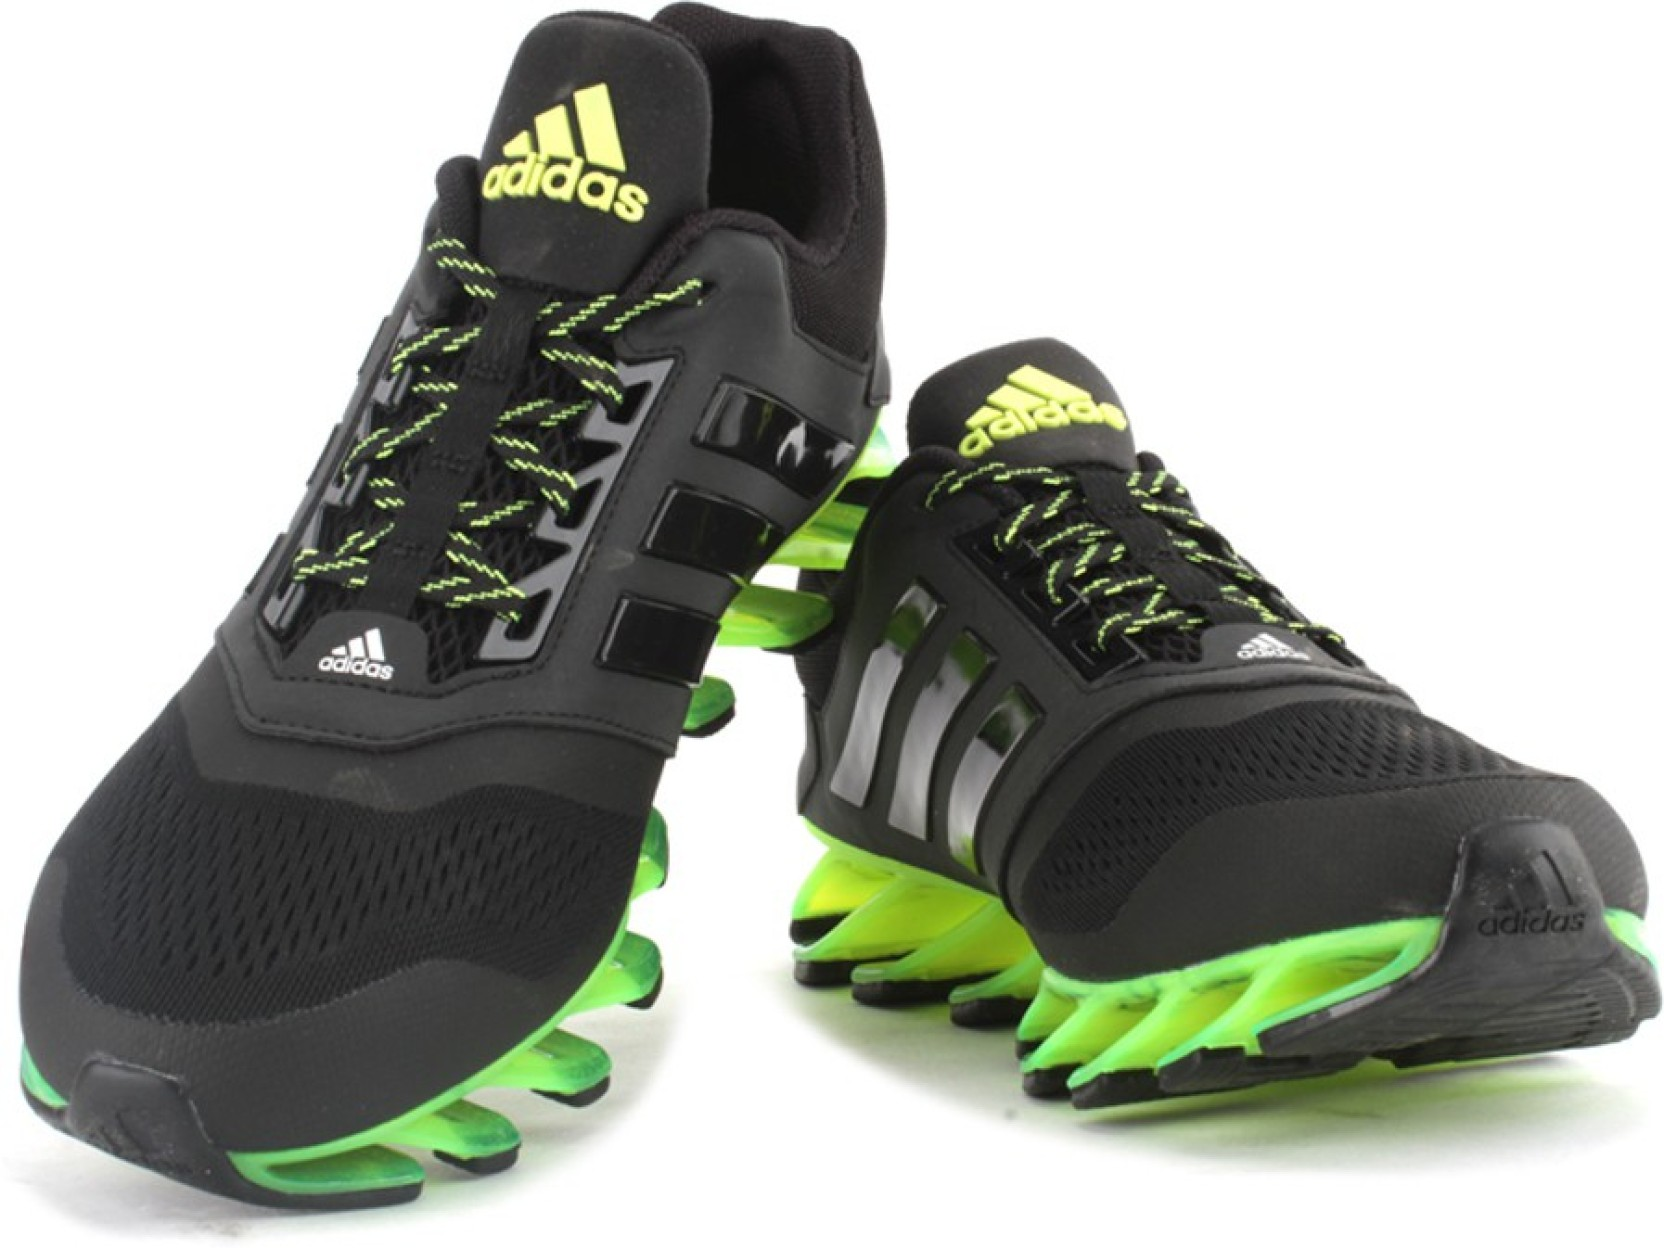 newest 0941b fcfa2 ADIDAS SPRINGBLADE DRIVE 2 M Men Running Shoes For Men (Black, Green)